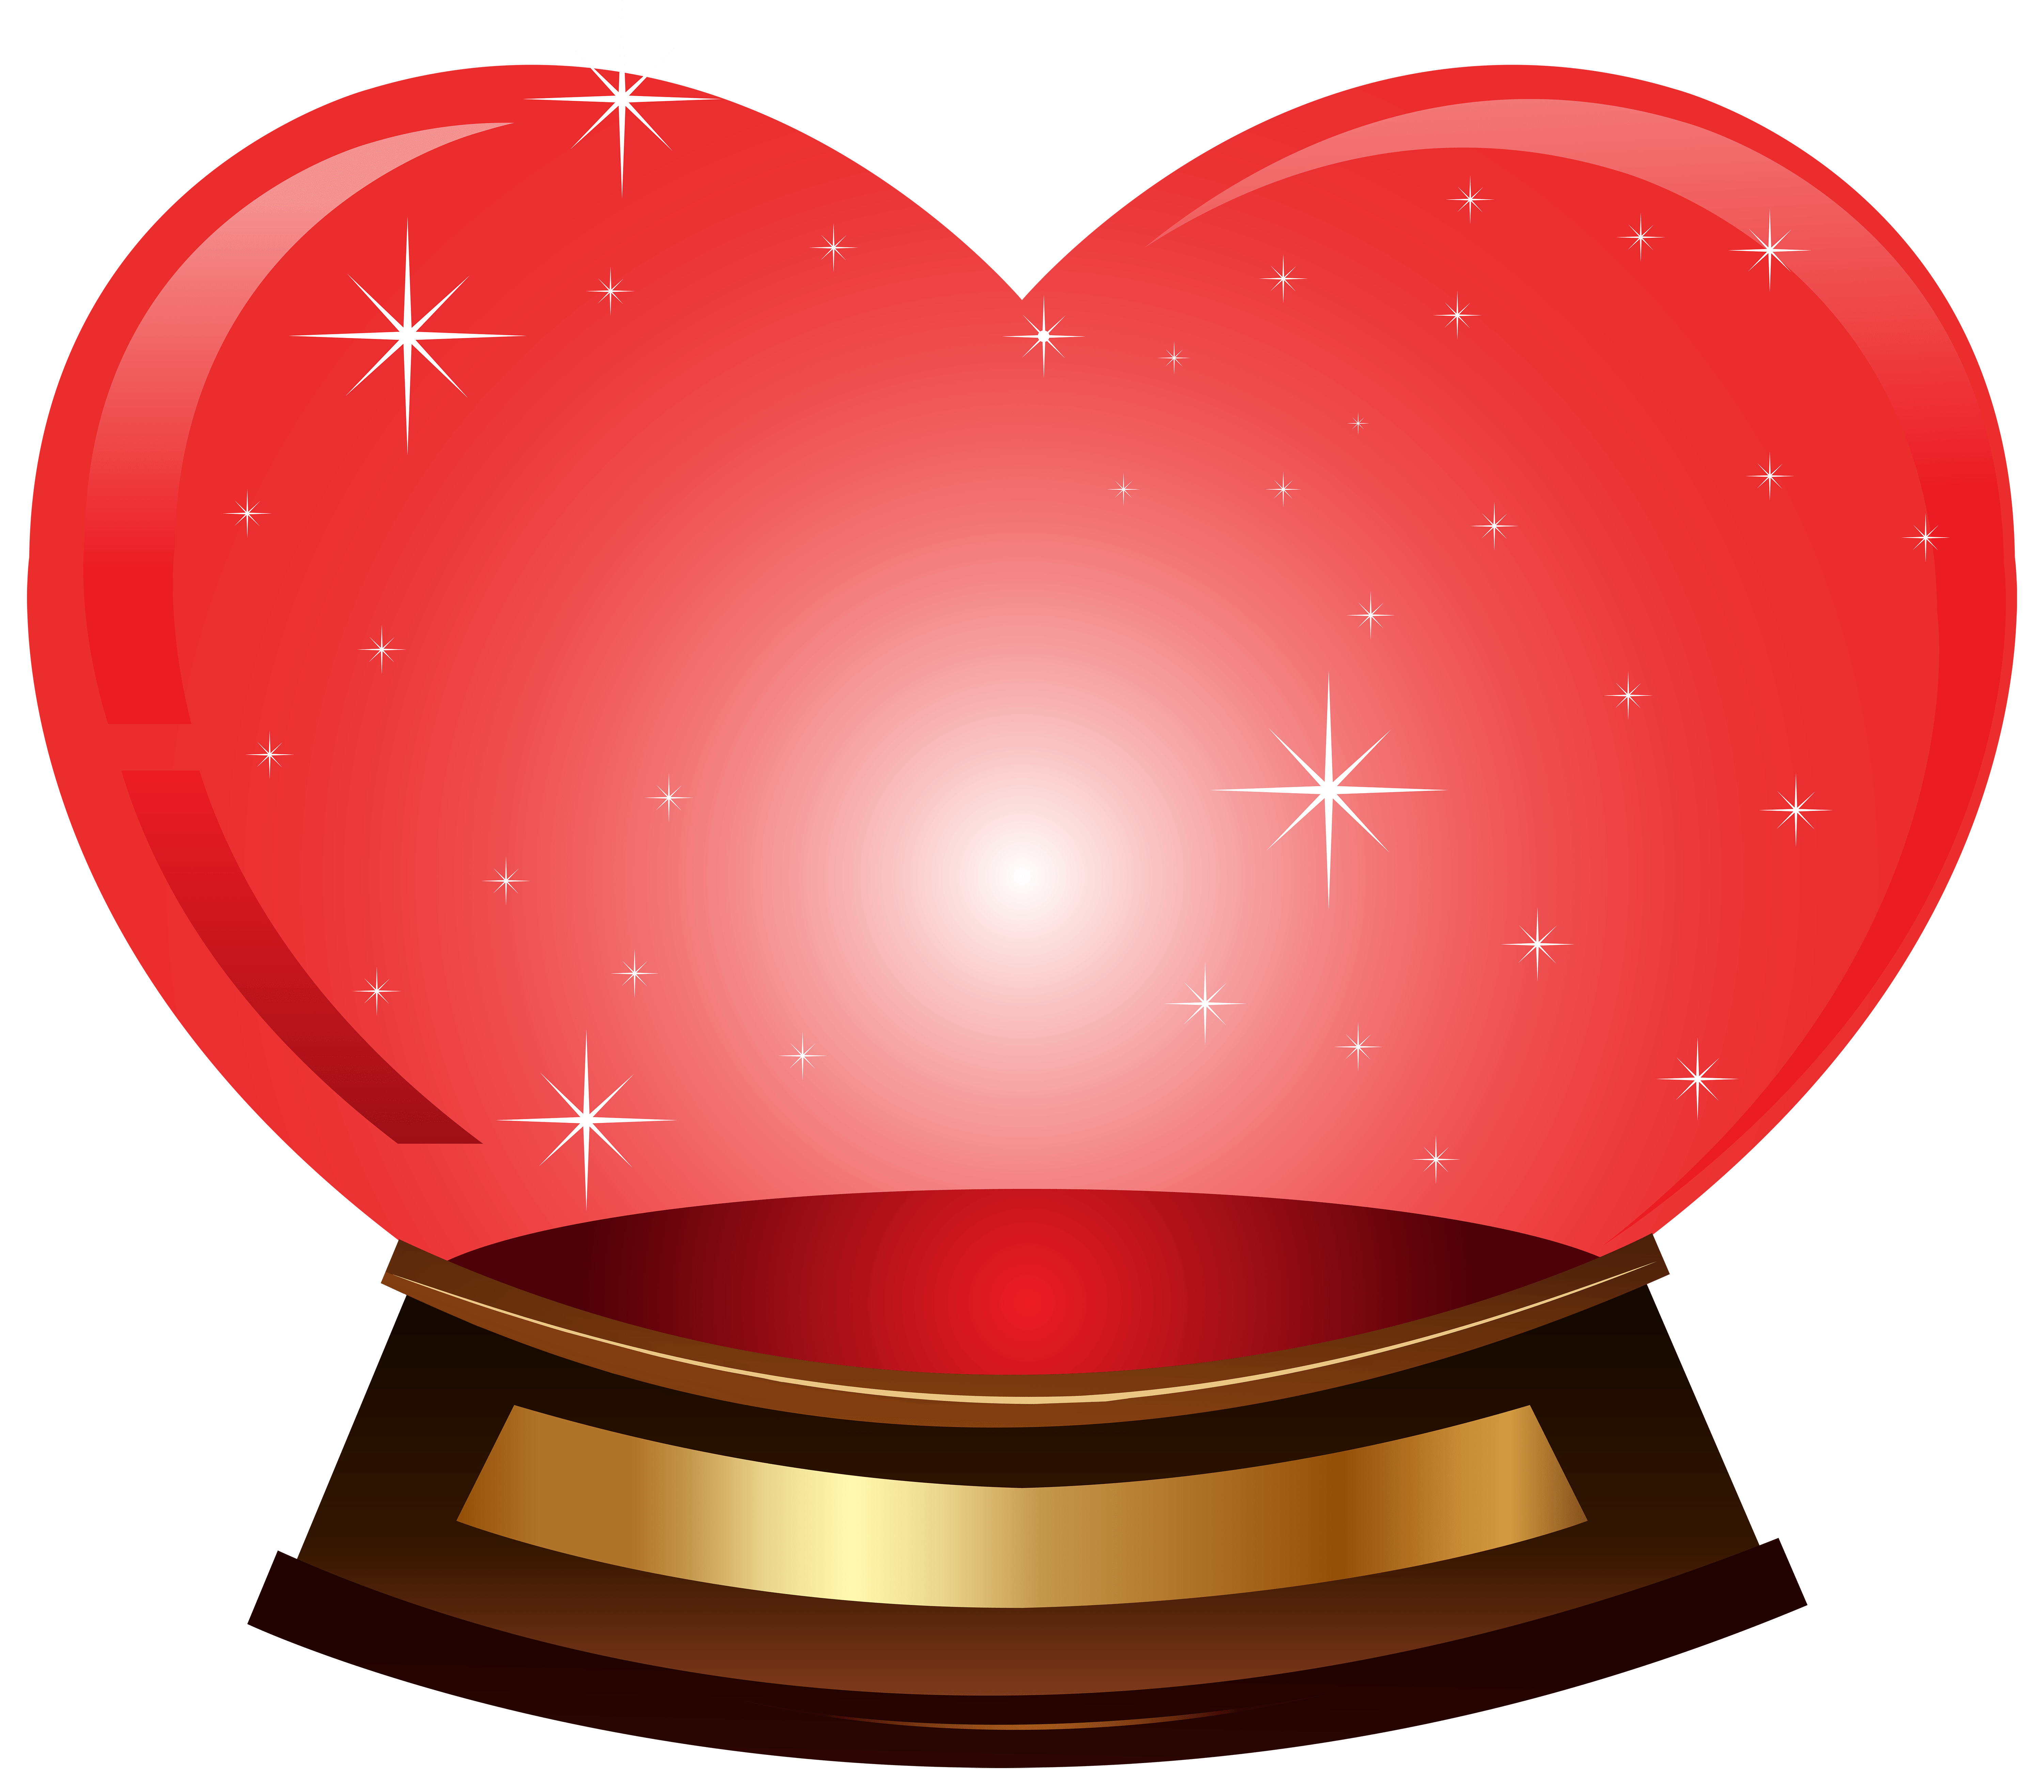 Rustic heart clipart clipart black and white library Free Globe Heart Cliparts, Download Free Clip Art, Free Clip Art on ... clipart black and white library